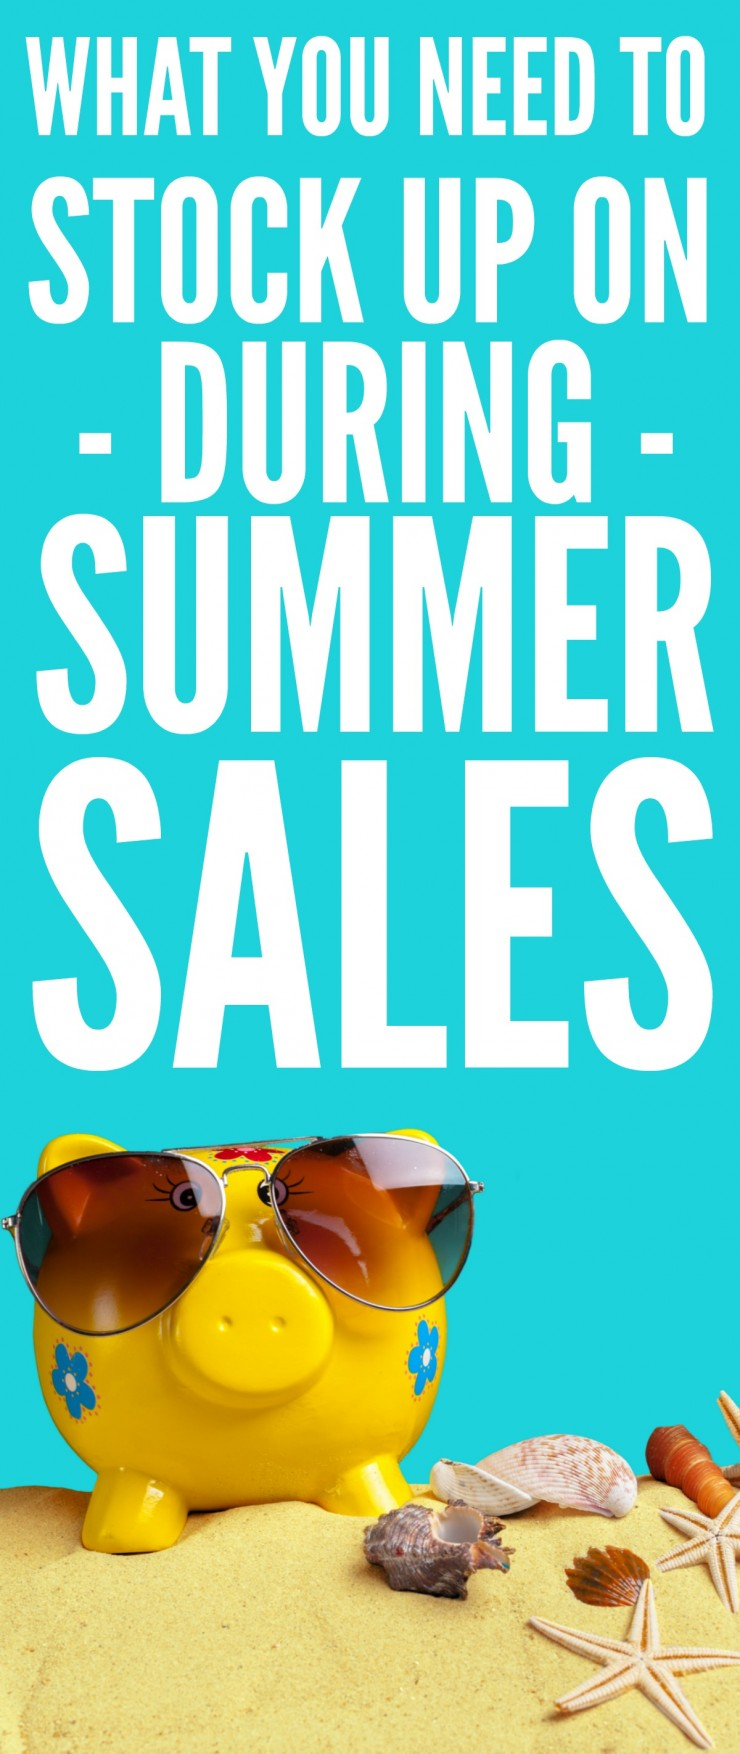 What You NEED to Stock Up on During Summer Sales